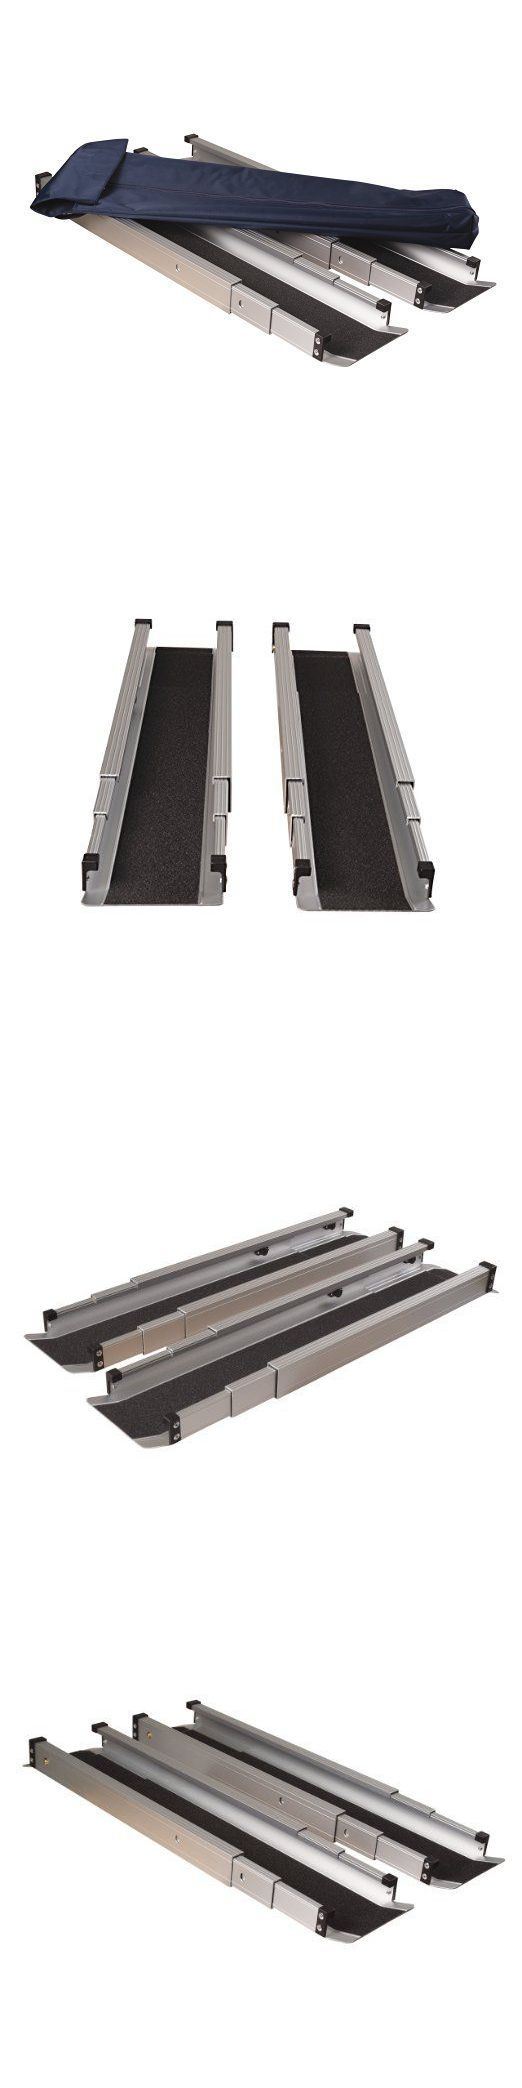 Access Ramps: Dmi Telescoping Retractable Lightweight Portable Wheelchair Ramps, New !!! BUY IT NOW ONLY: $129.99